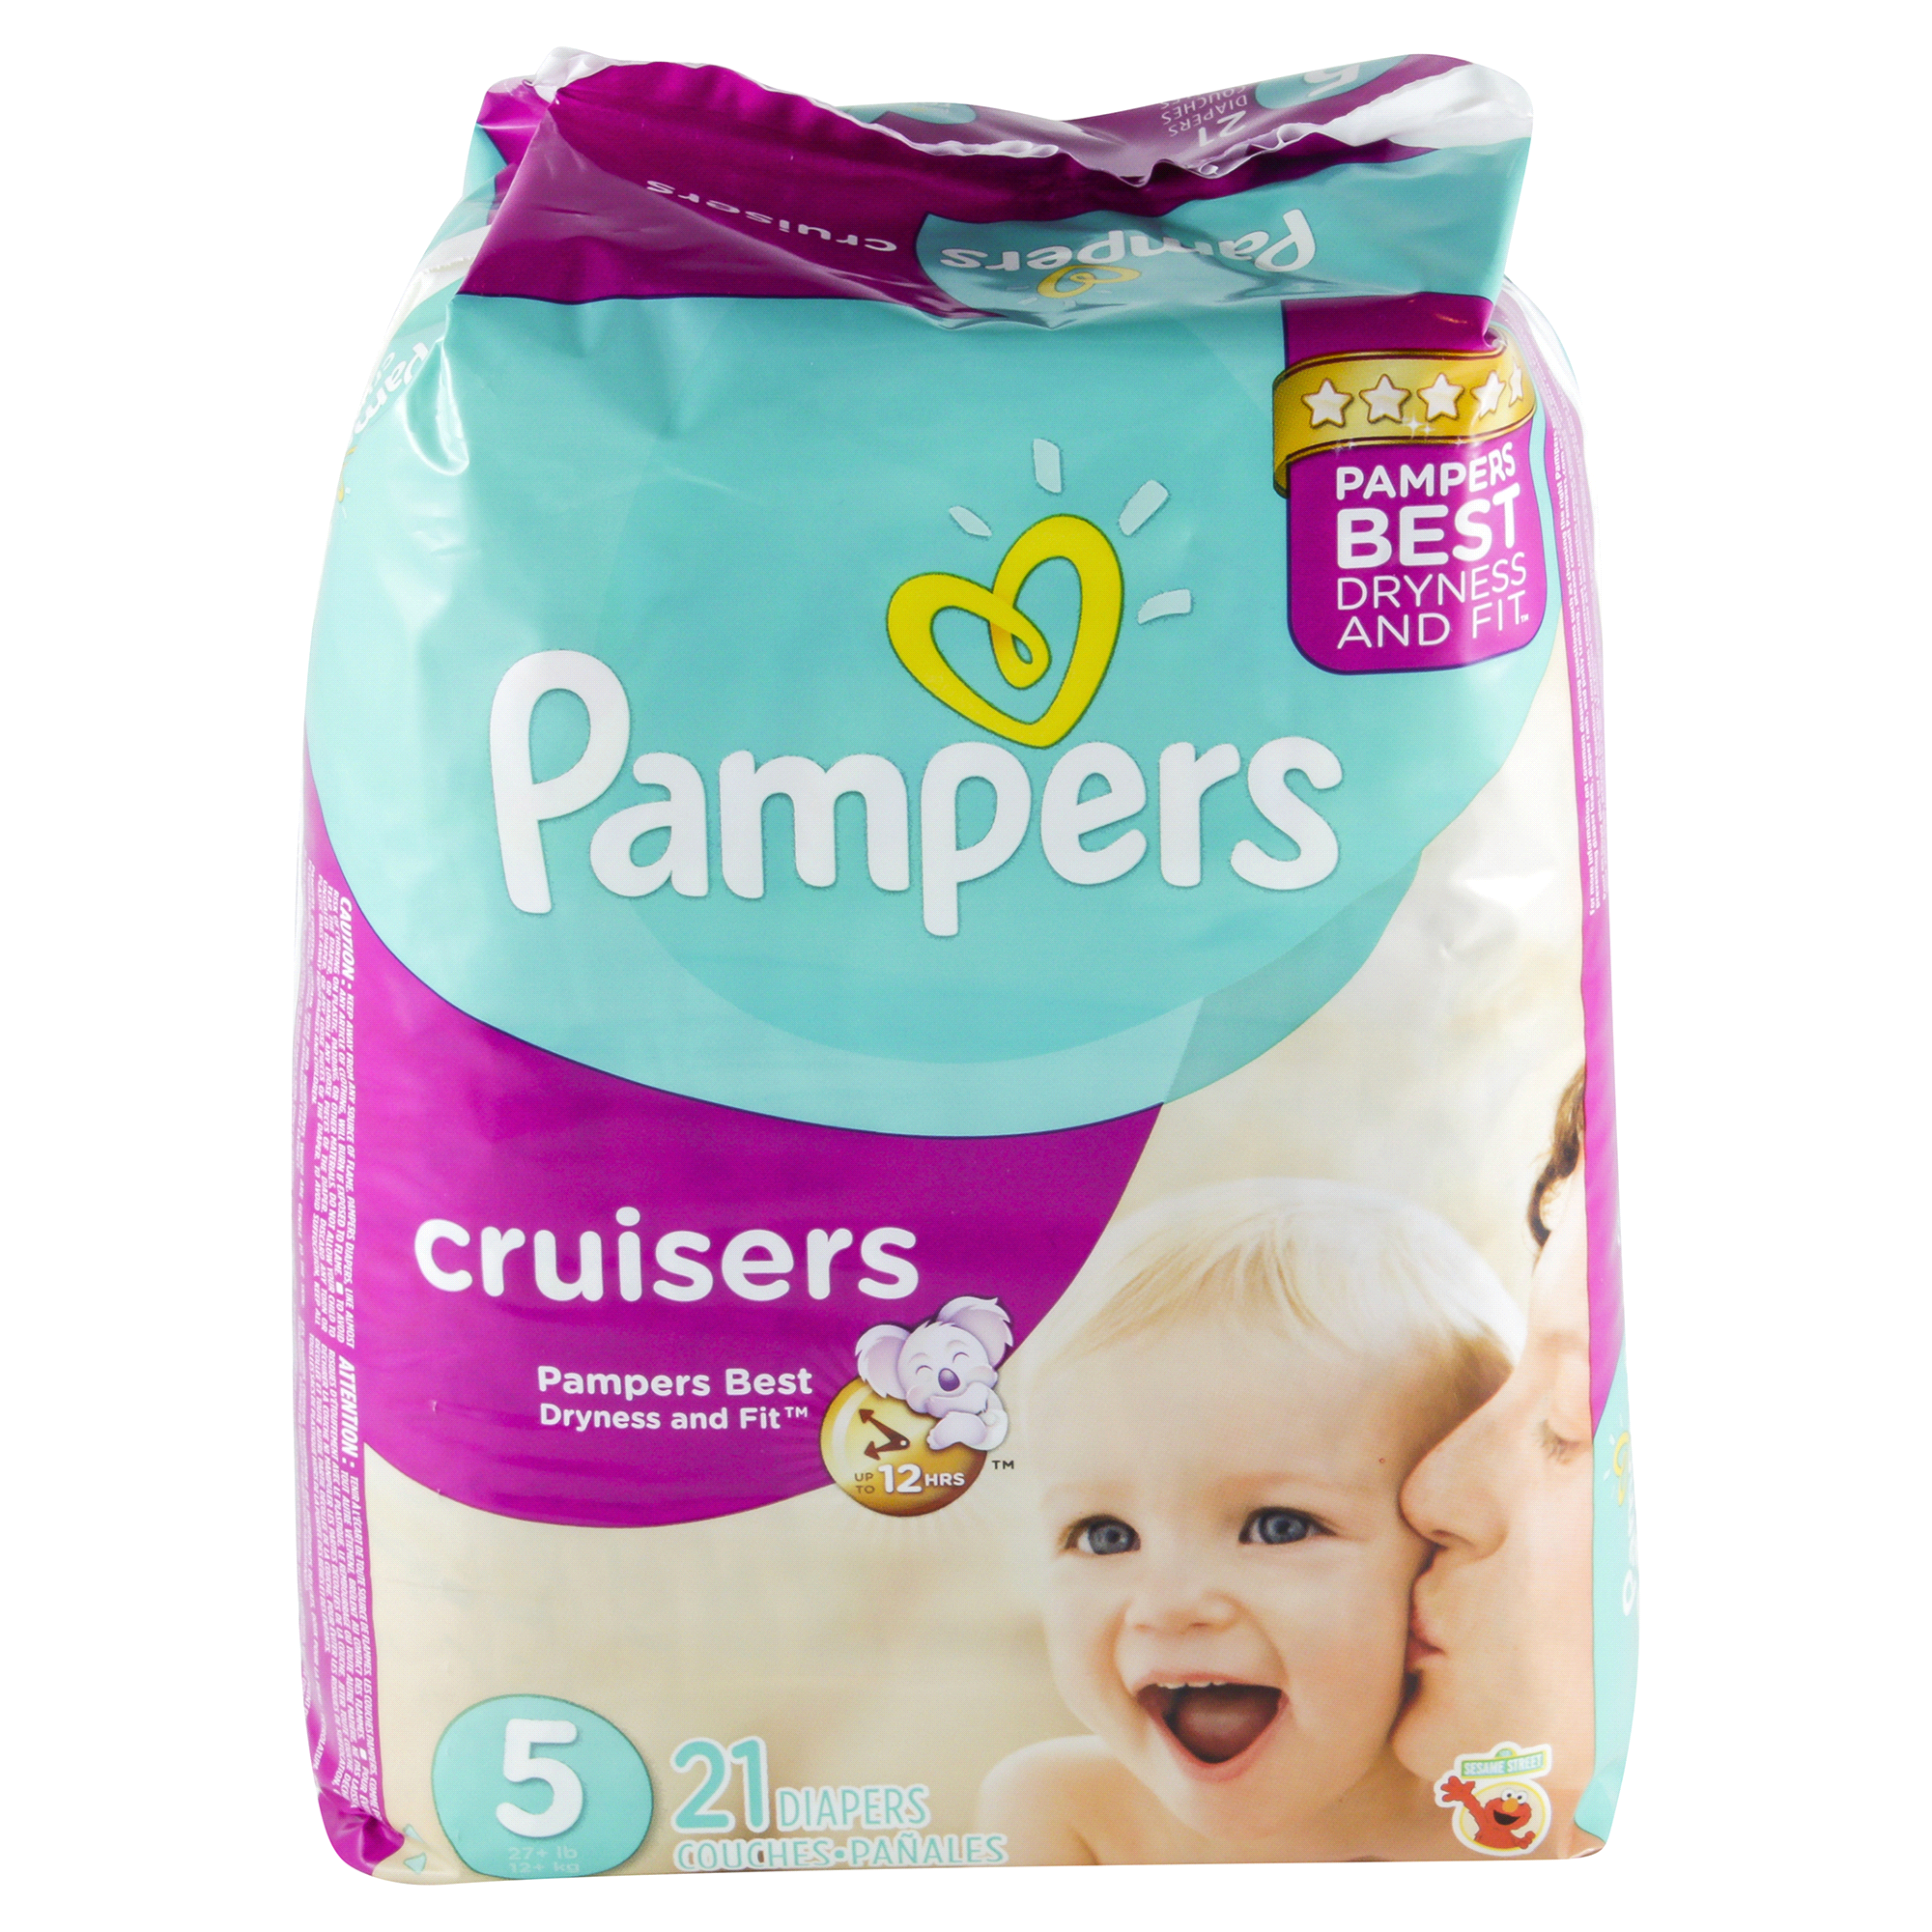 Pampers super pack cruisers size 5 21 ct meijer nvjuhfo Image collections